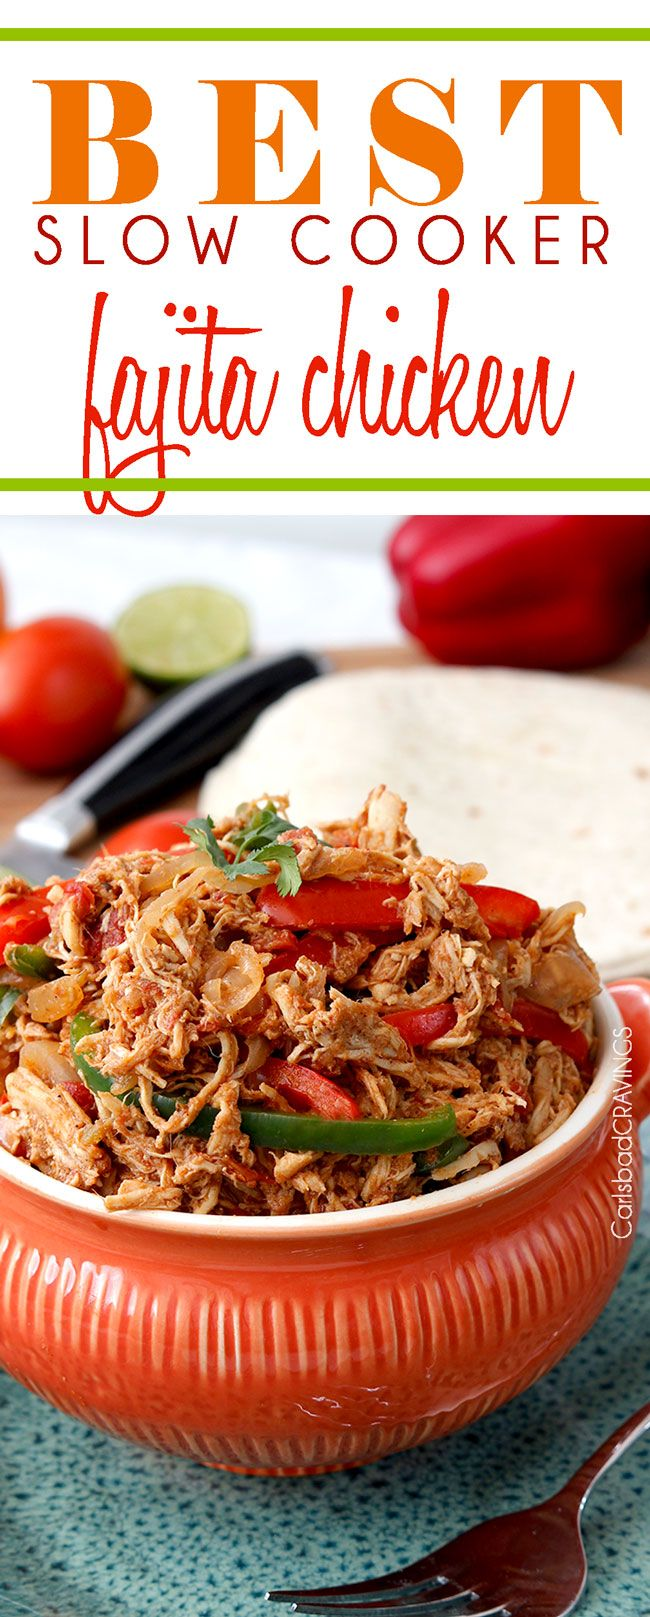 Best Slow Cooker Fajita Chicken | http://www.carlsbadcravings.com/slow-cooker-citrus-fajita-chicken/